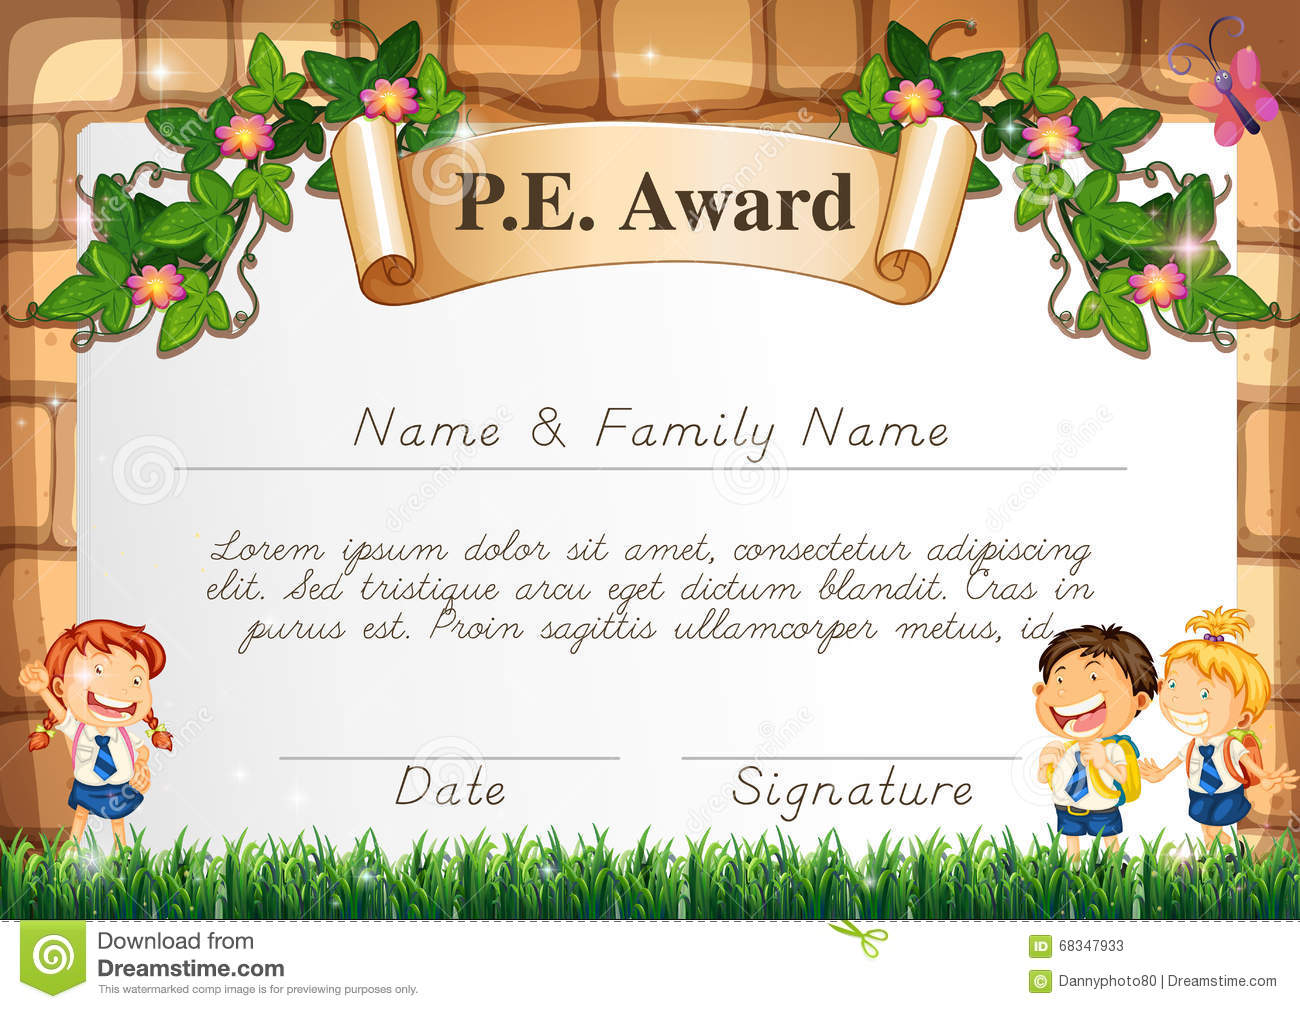 Certificate template for pe award stock vector illustration of certificate template for pe award yelopaper Images